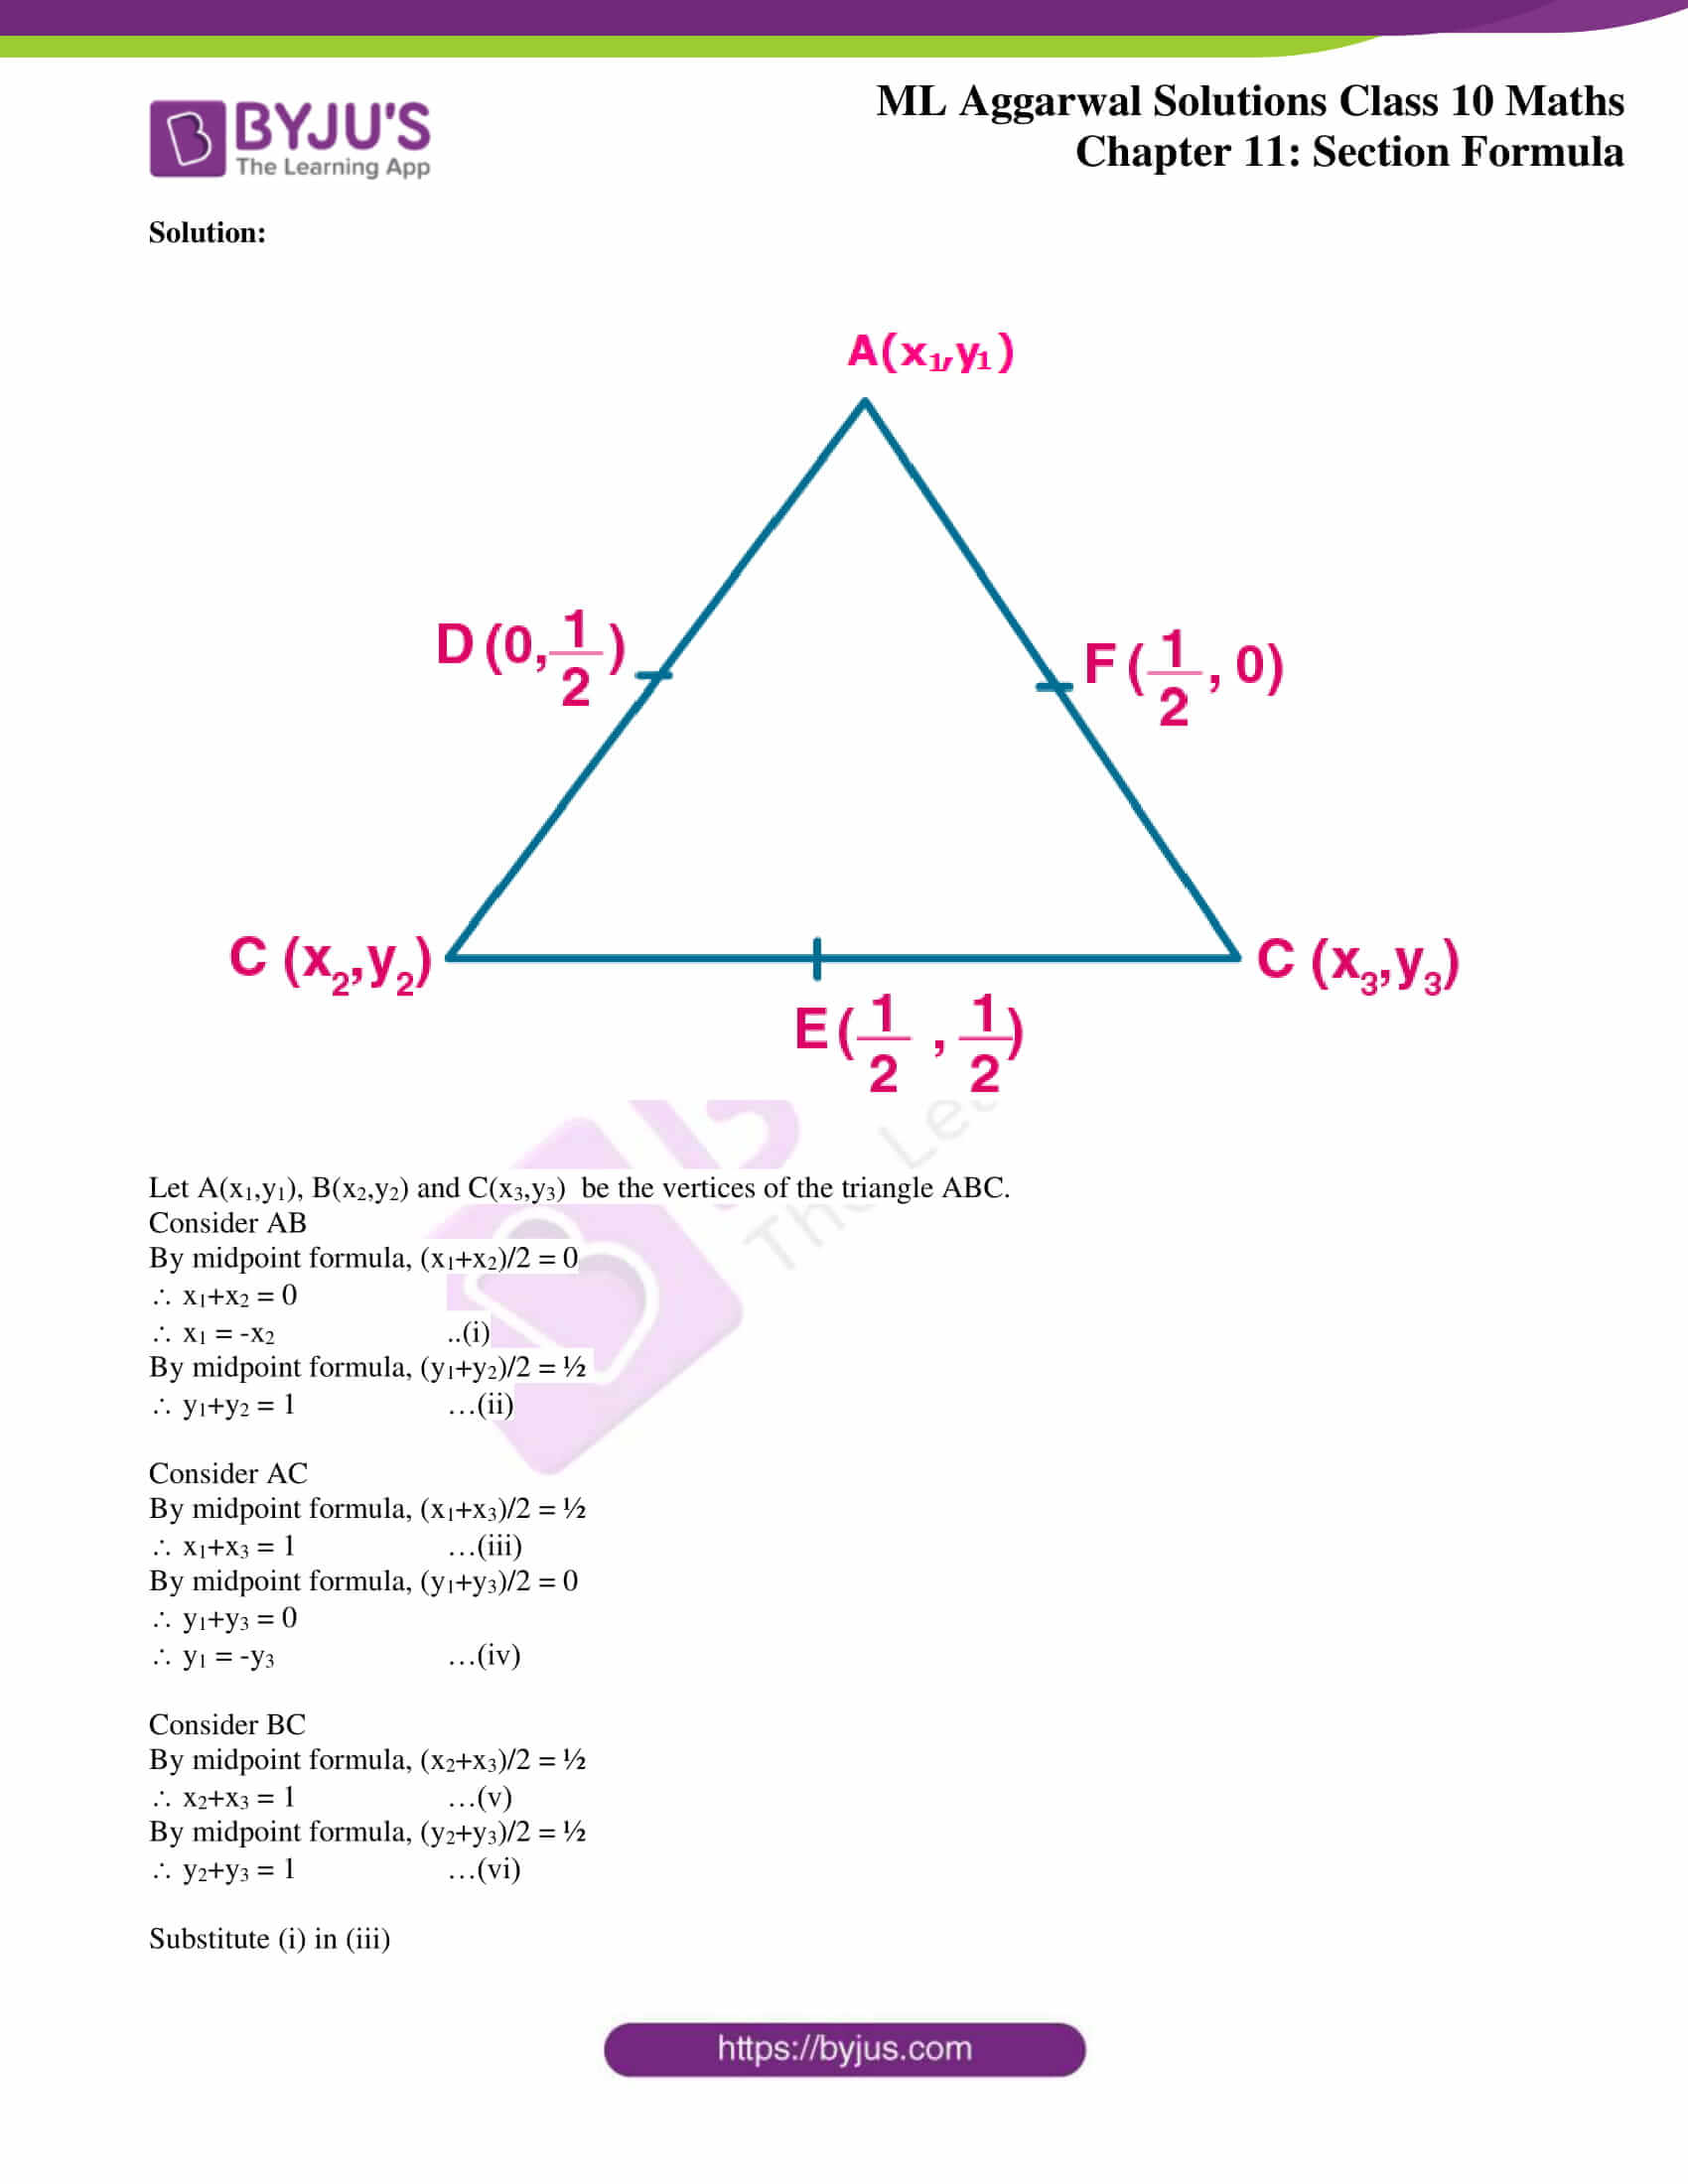 ml aggarwal solutions class 10 maths chapter 11 23